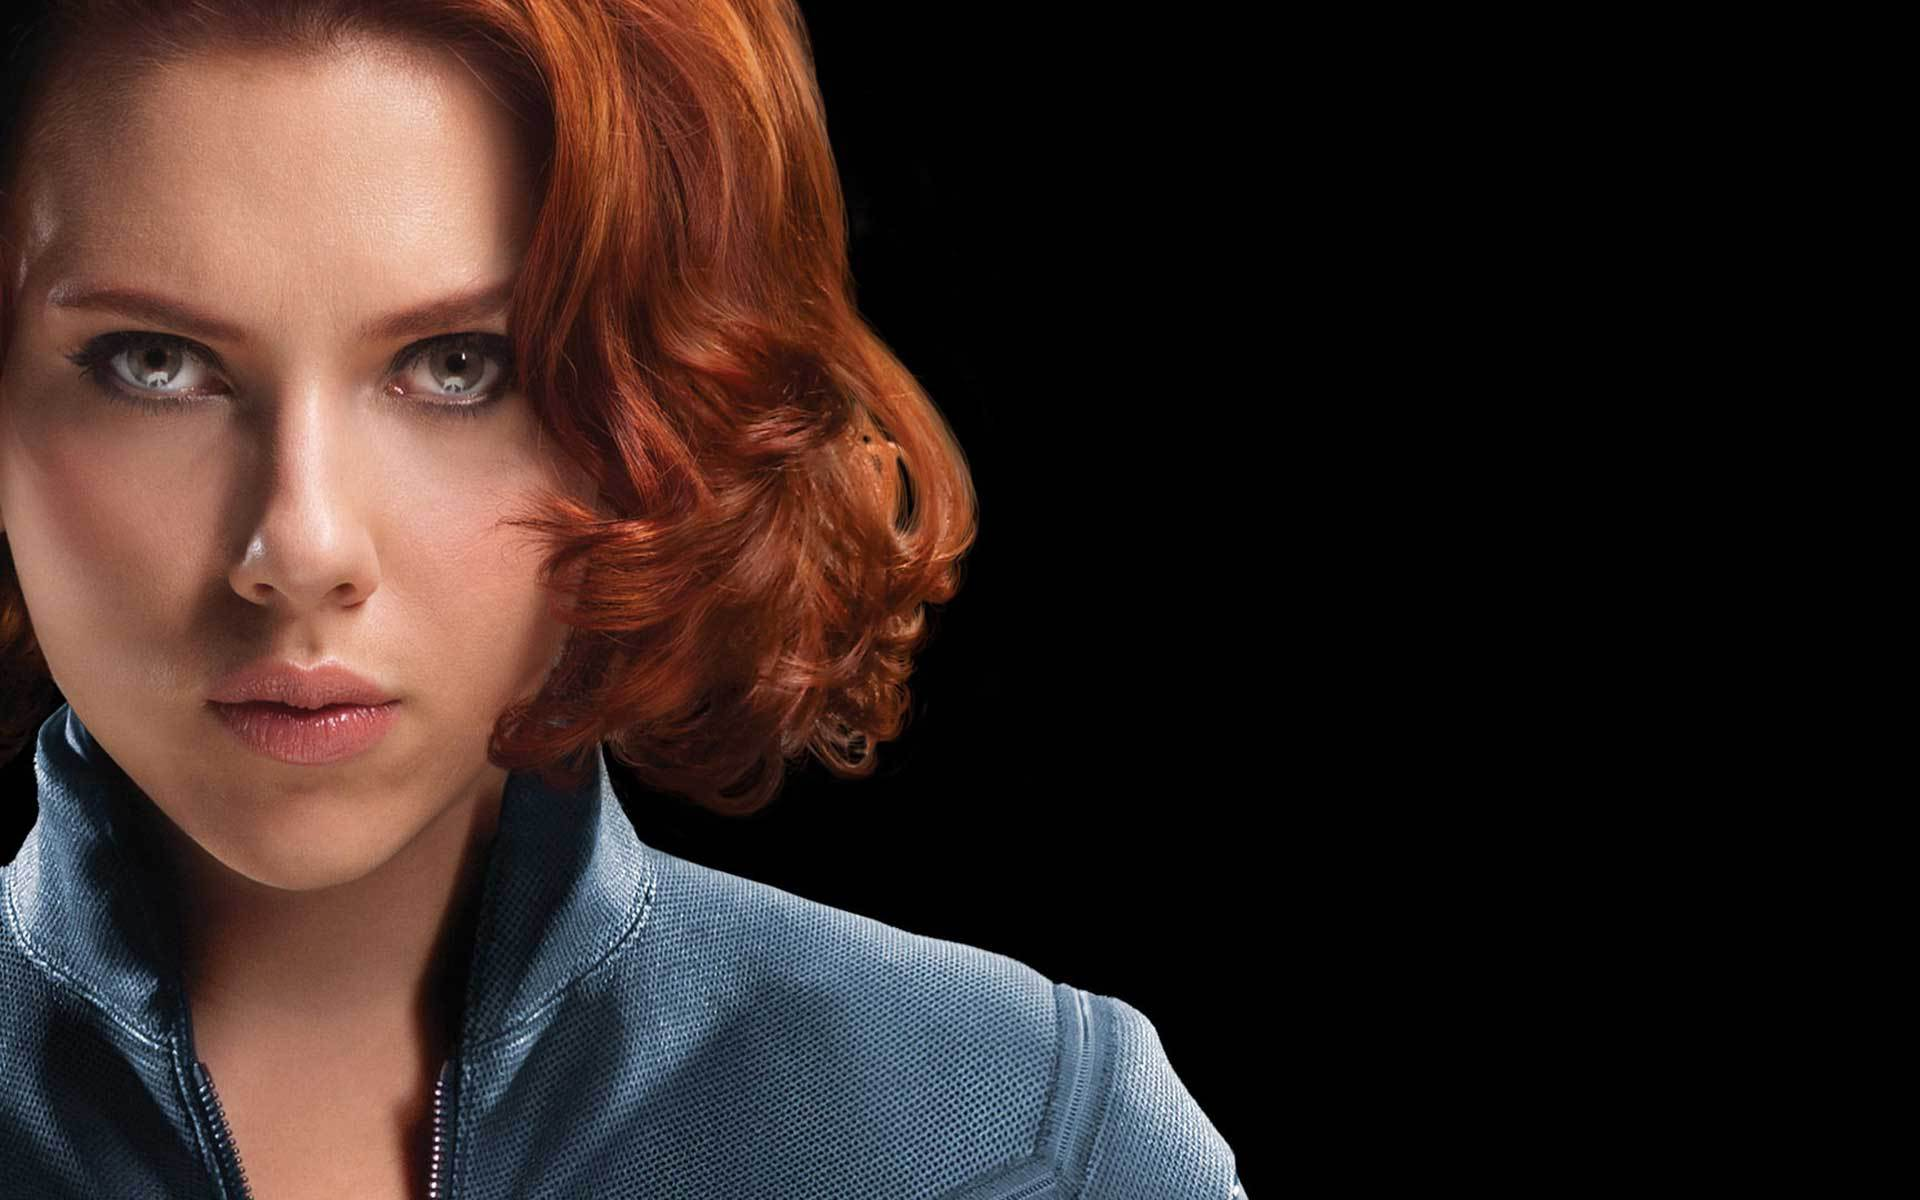 Black Widow Background